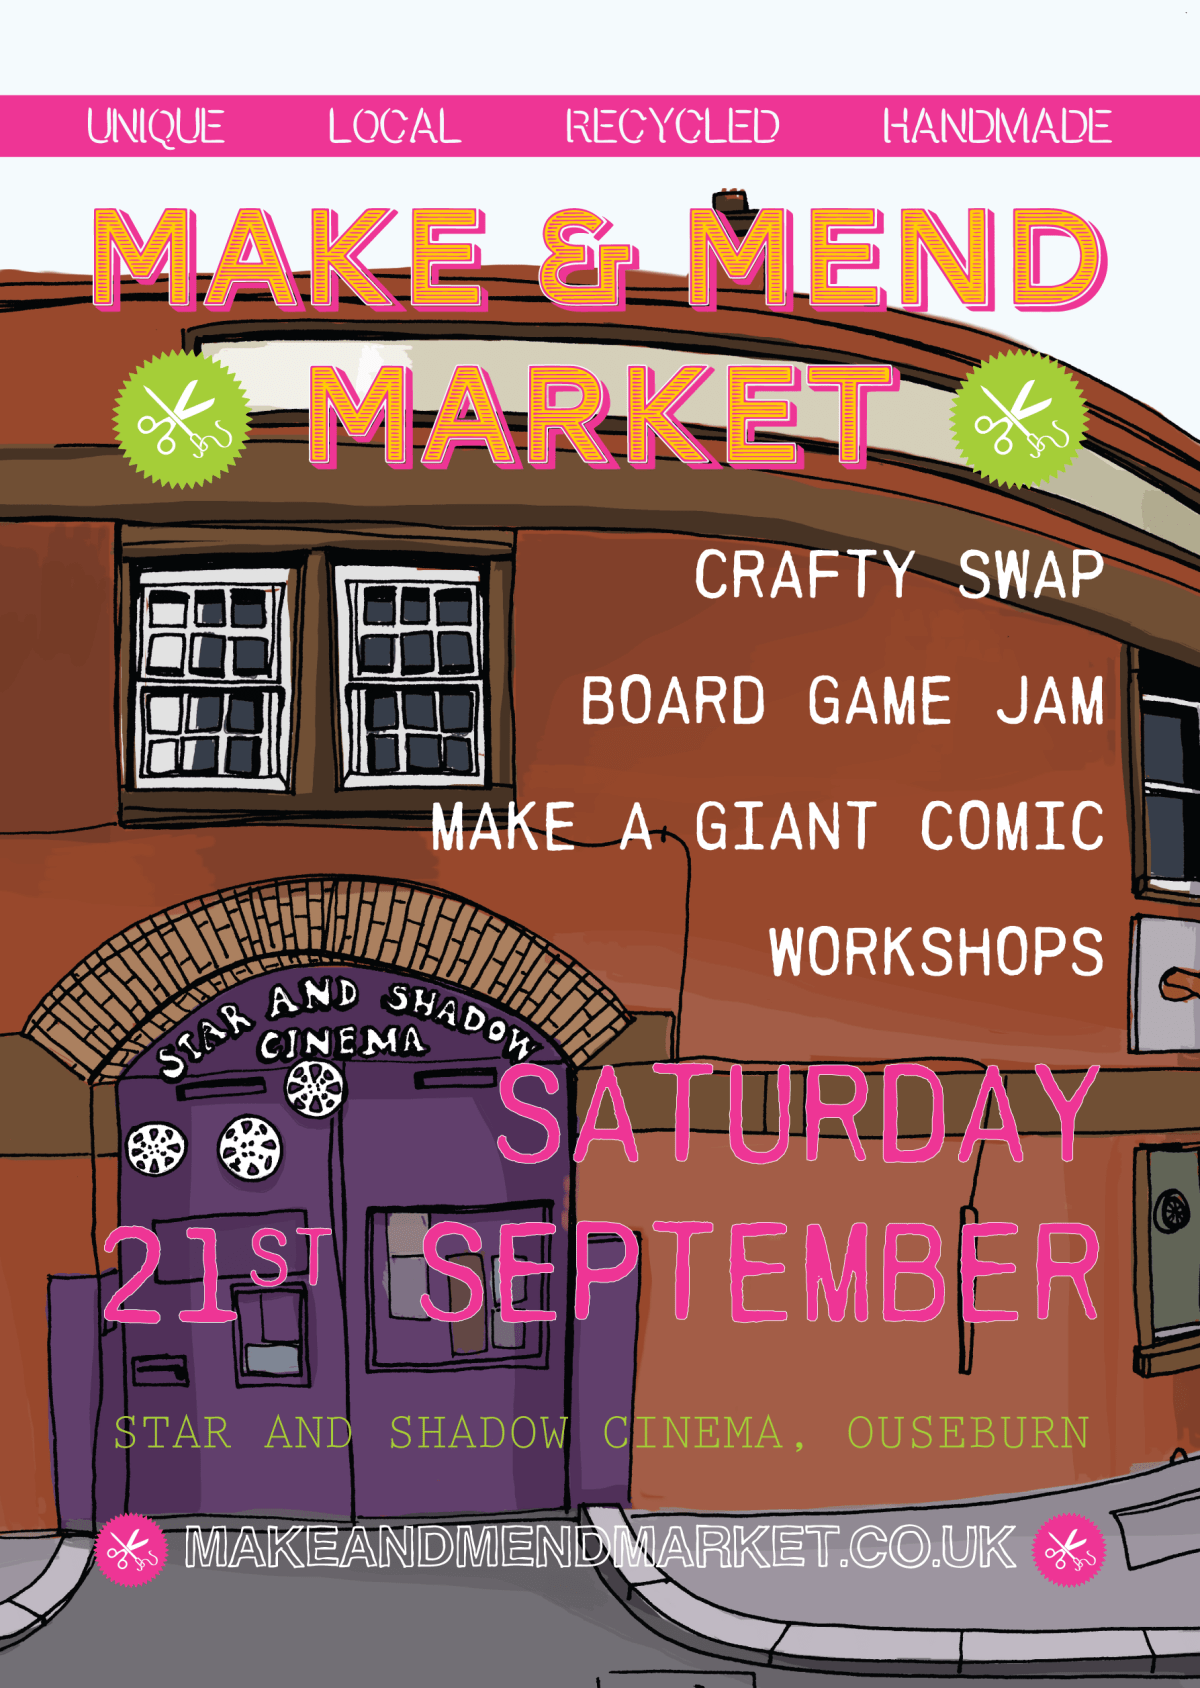 Make & Mend Market Flyer Design - September 2013 Star and Shadow Cinema - Illustration by Katie Chappell